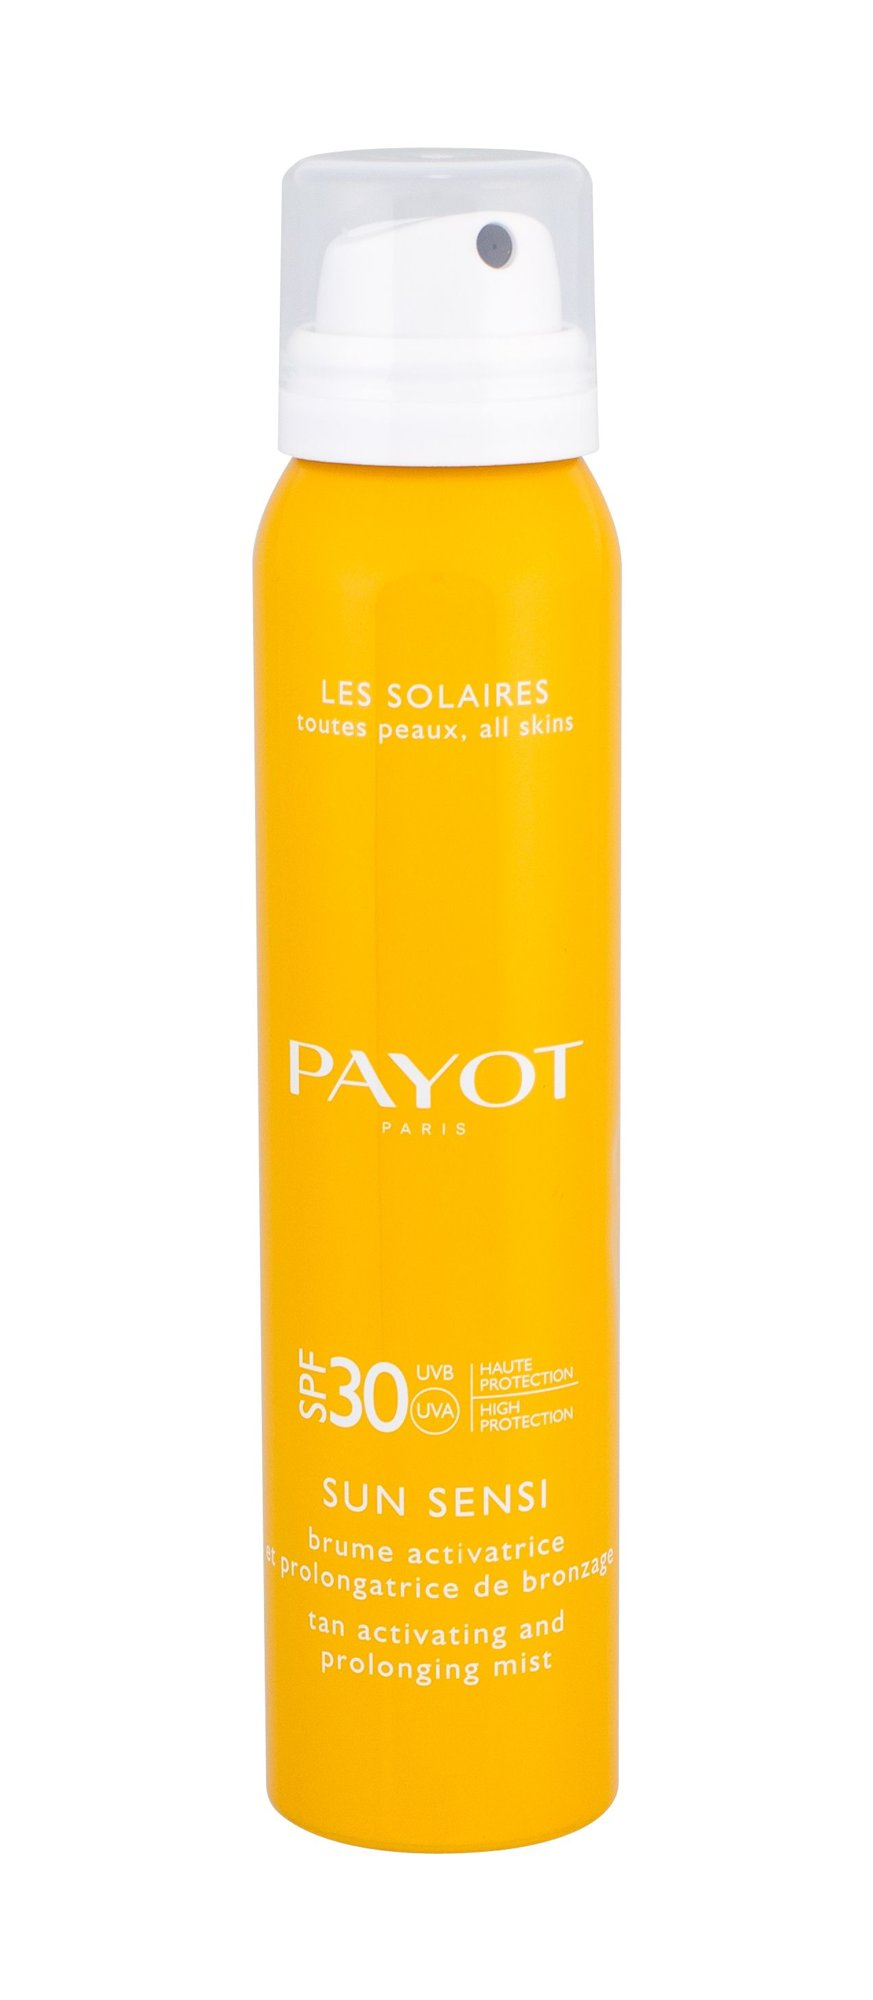 PAYOT Les Solaires Cosmetic 125ml